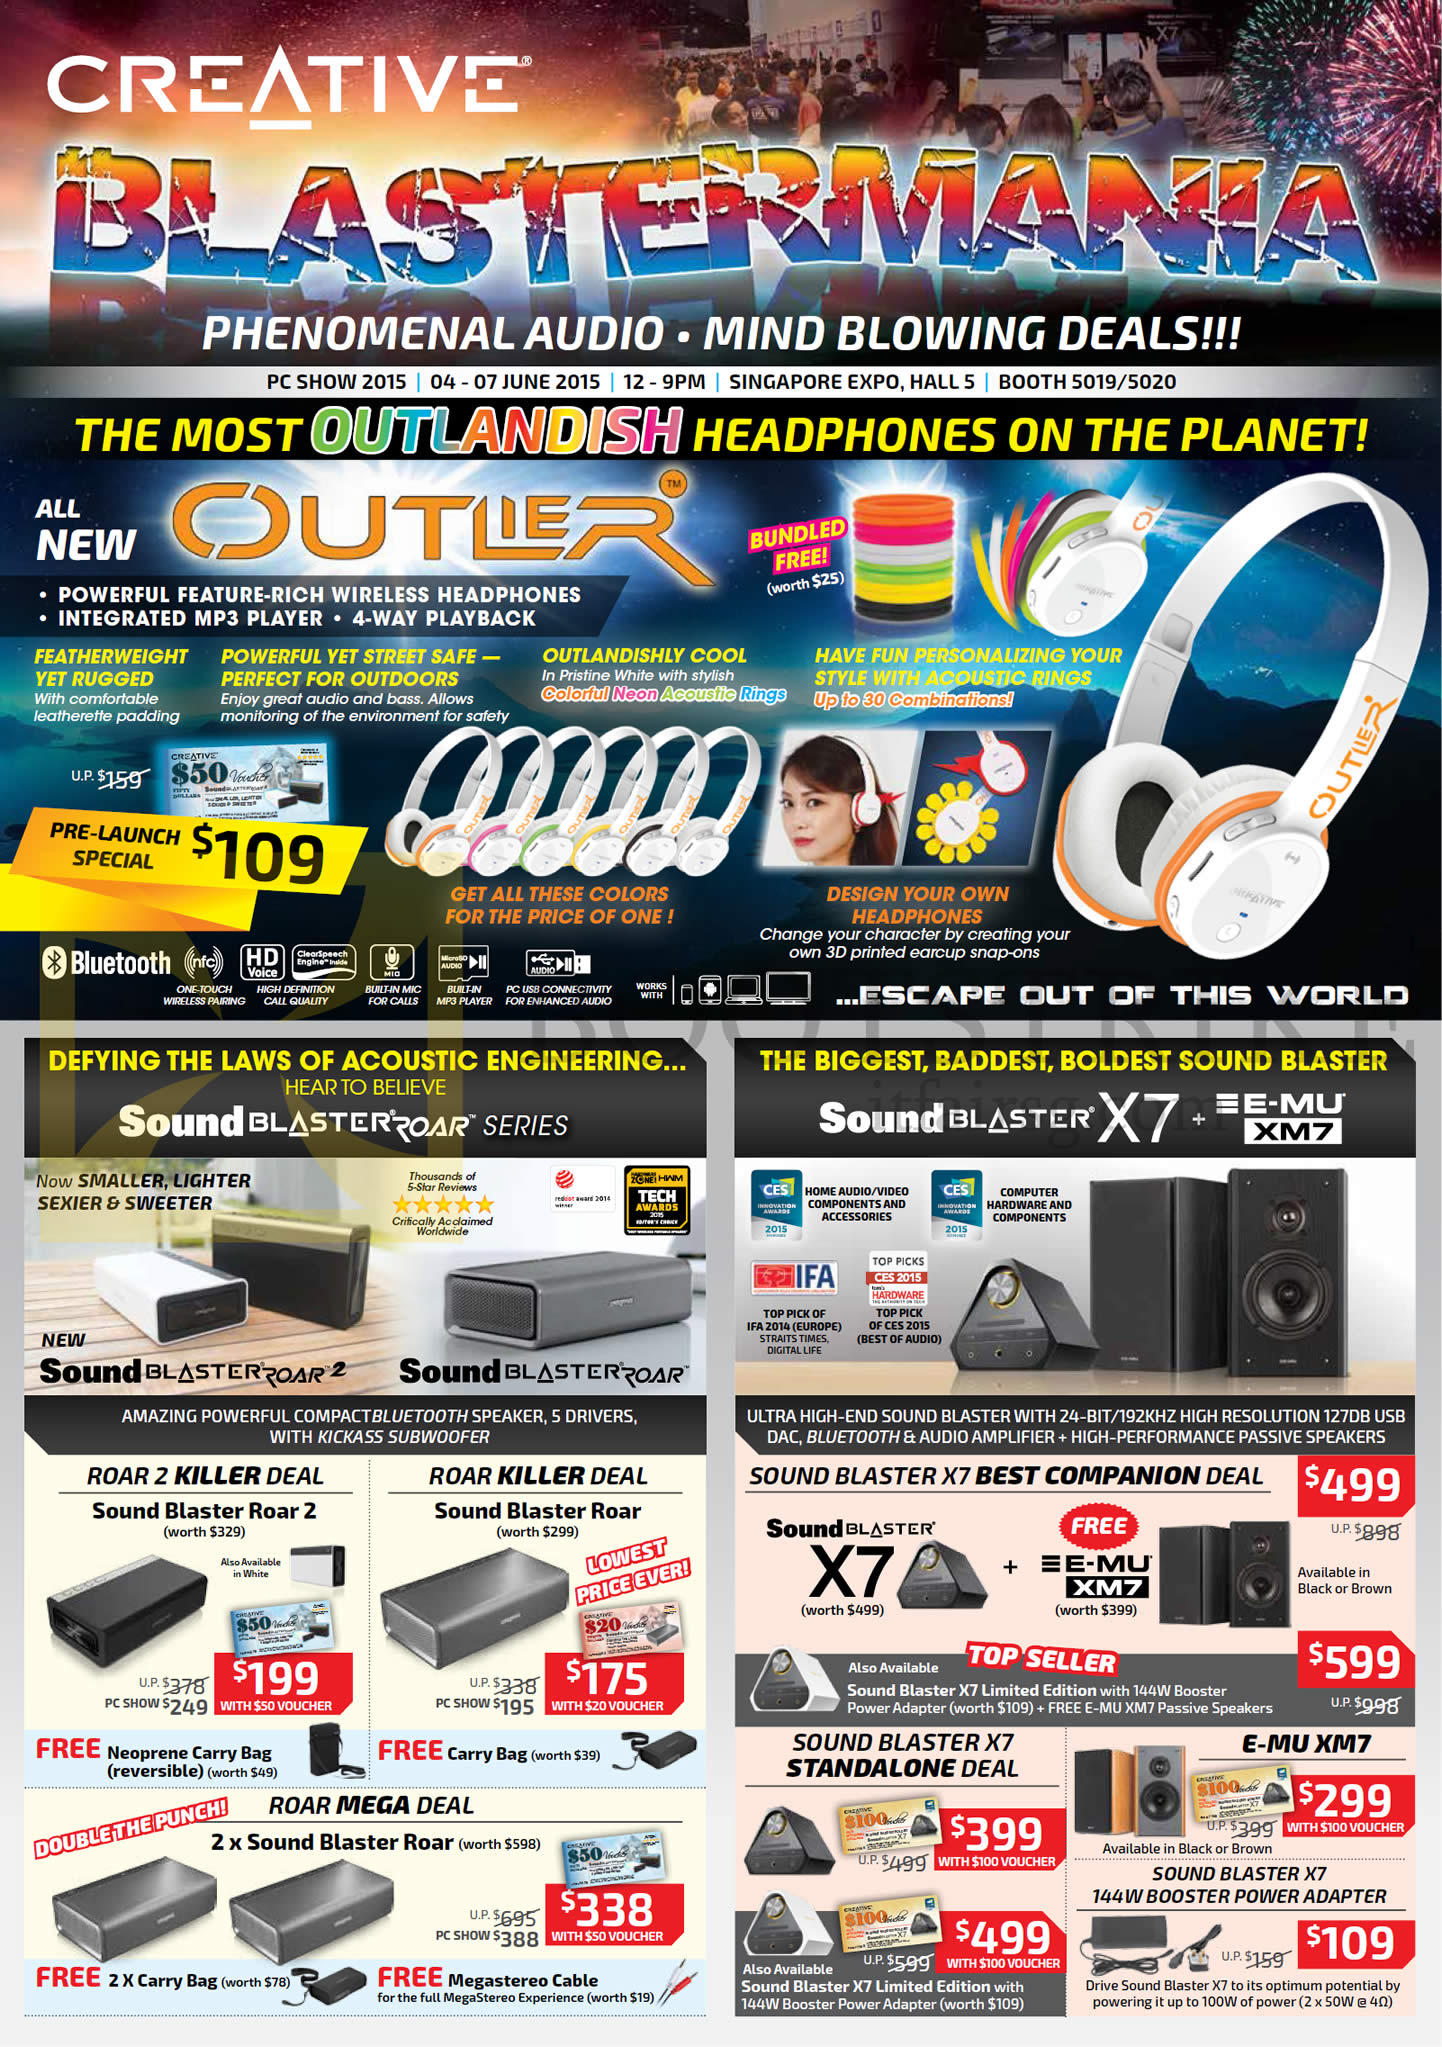 PC SHOW 2015 price list image brochure of Creative Speakers, Headphones, Outlier Headset, Sound Blaster Roar Series, X7, E-MU XM7